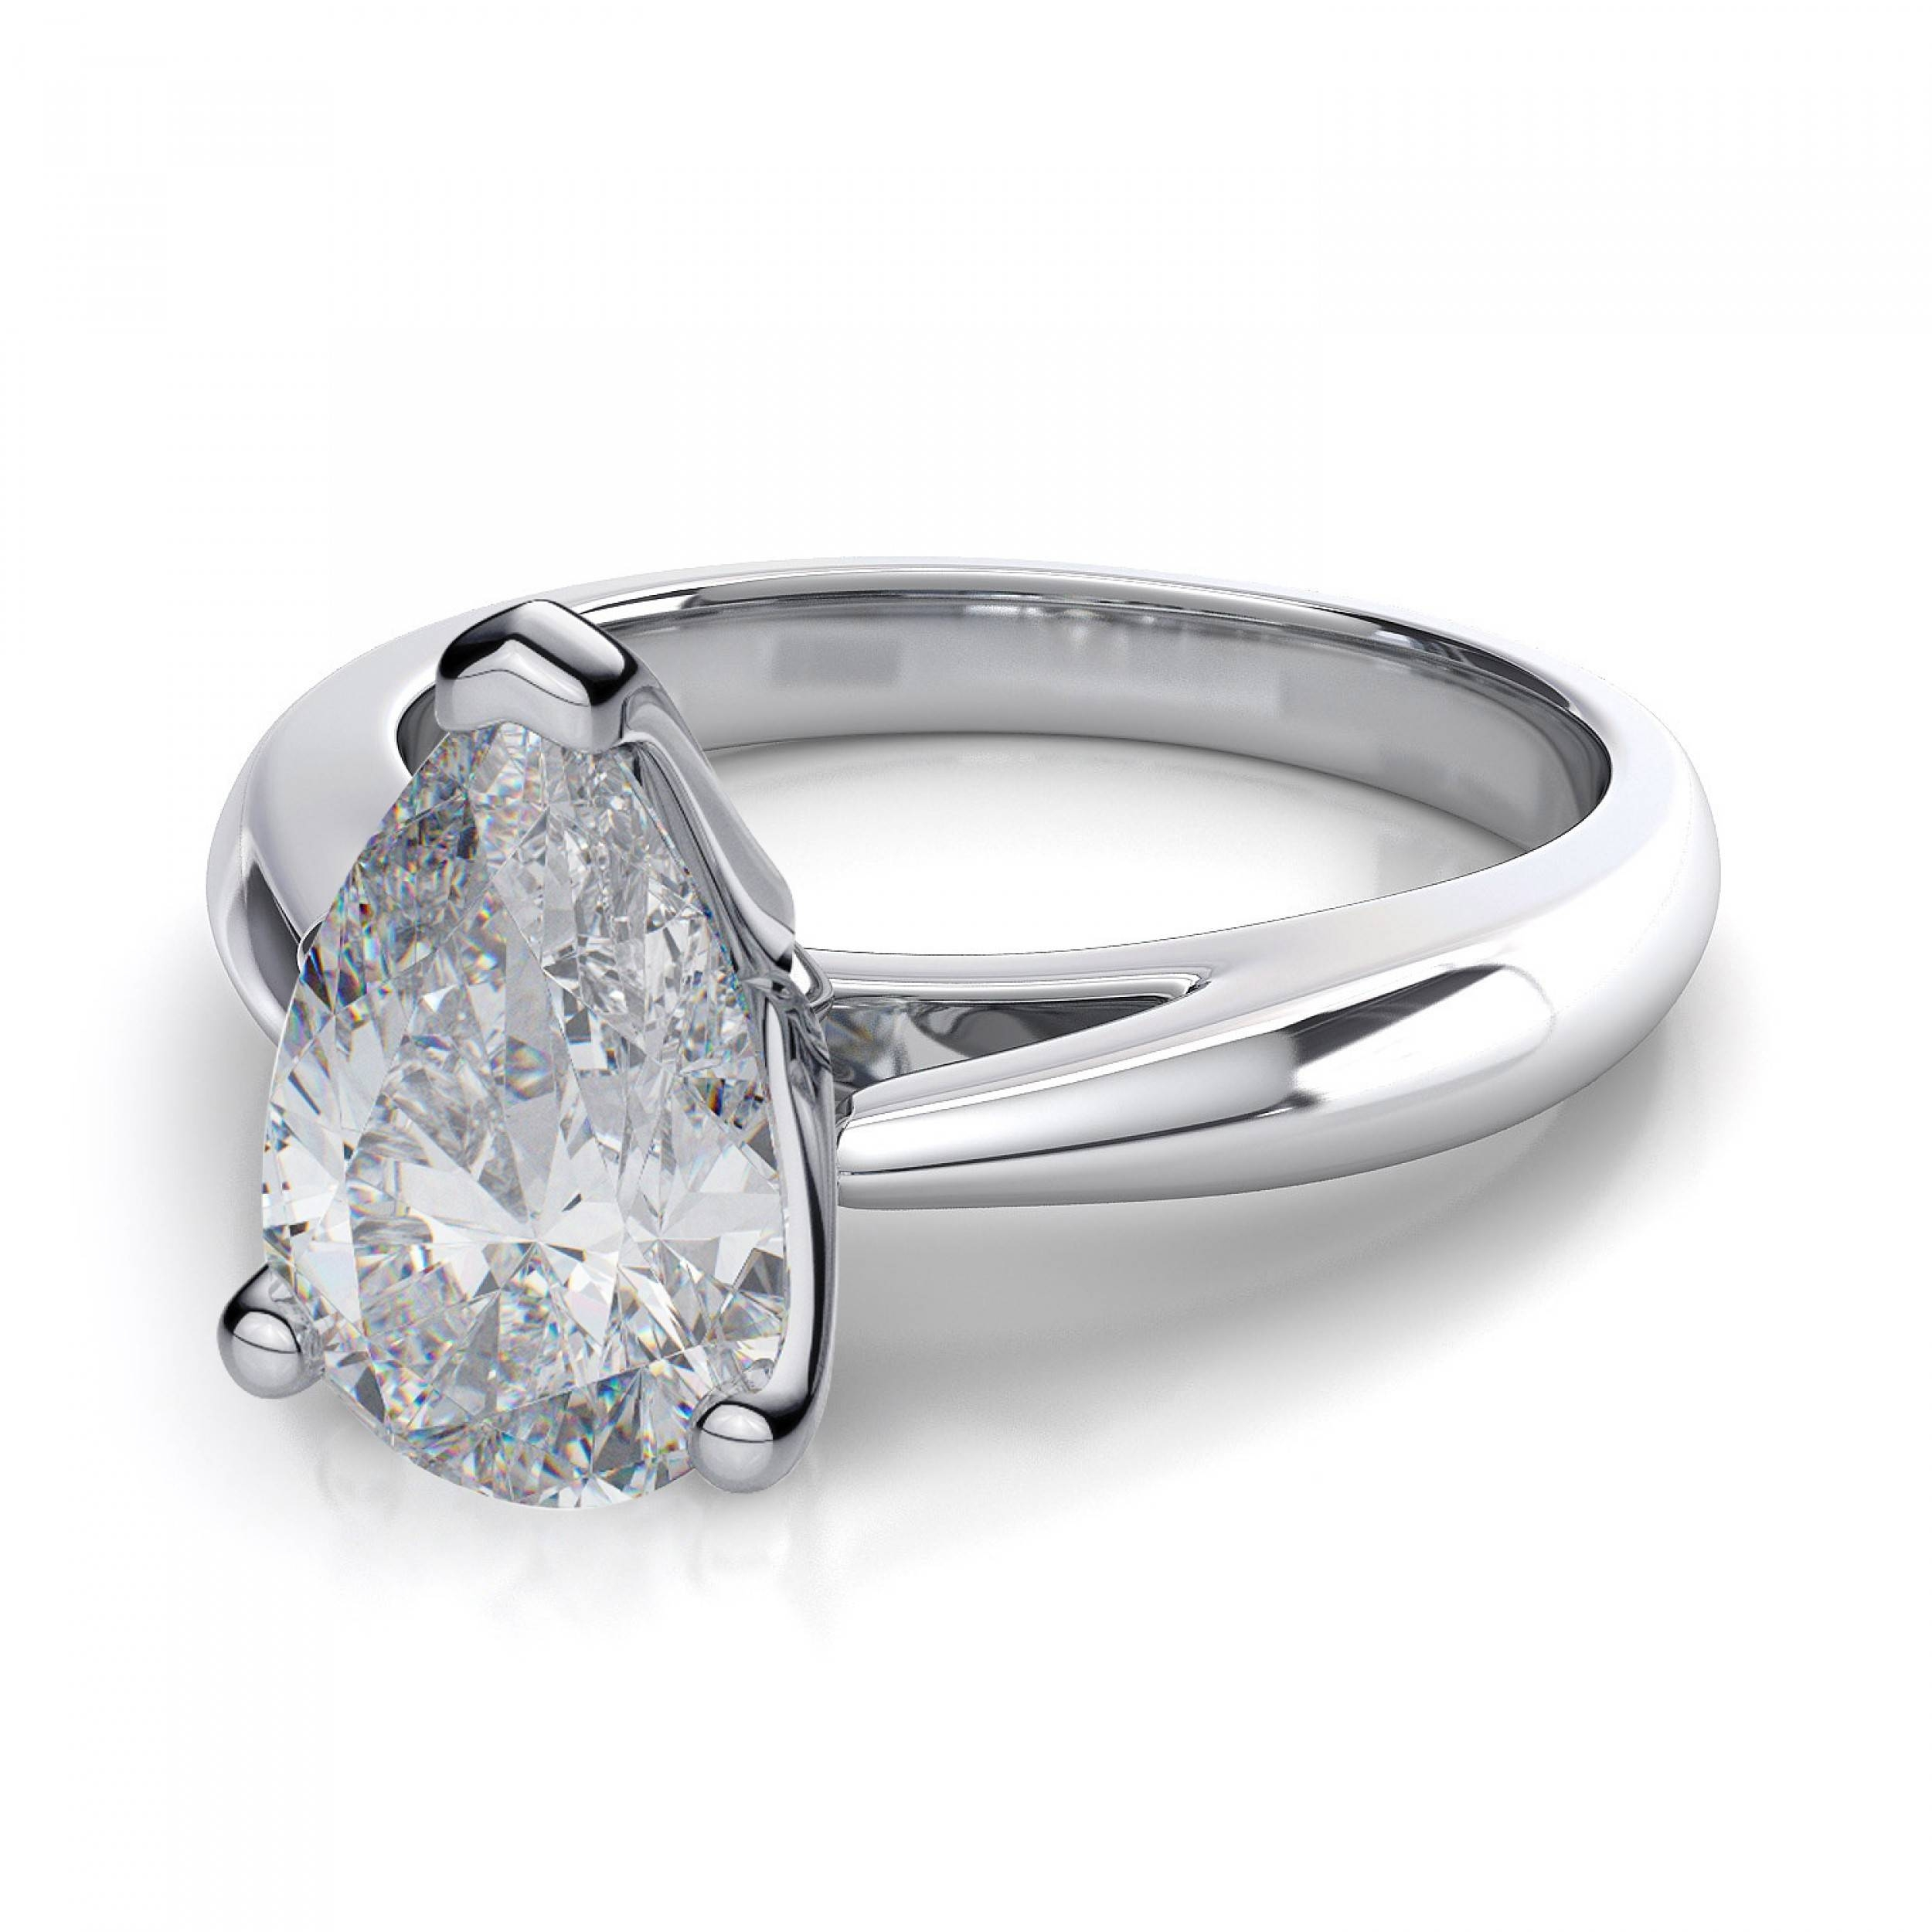 Knife Edge Pear Shape Diamond Solitaire Ring – Platinum In Pear Shaped Diamond Settings Engagement Rings (View 13 of 15)